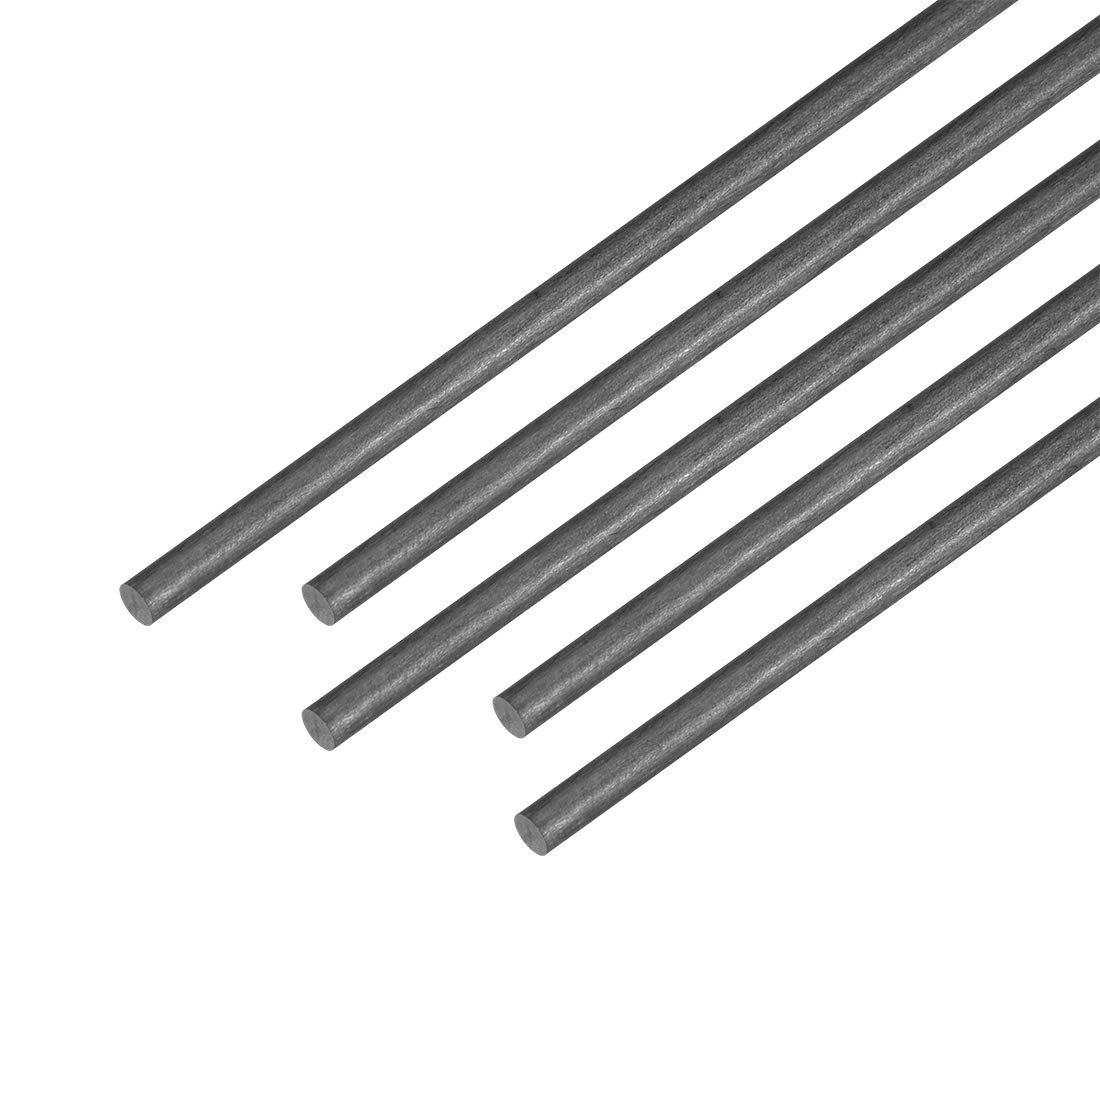 uxcell 10mm Carbon Fiber Bar For RC Airplane Matte Pole US 400mm 15.7 inch